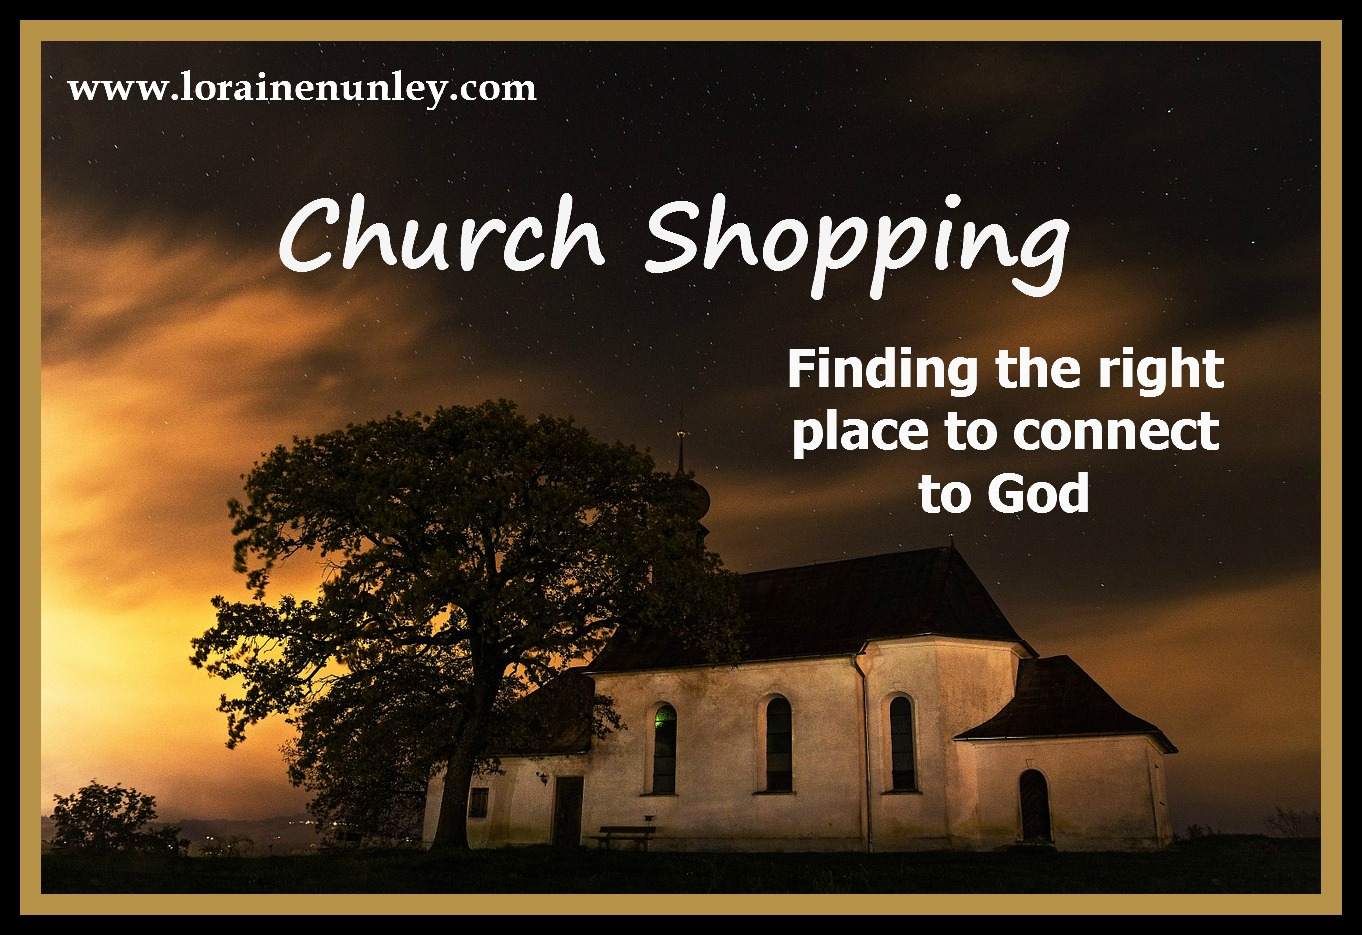 Church Shopping - Finding the right place to connect to God